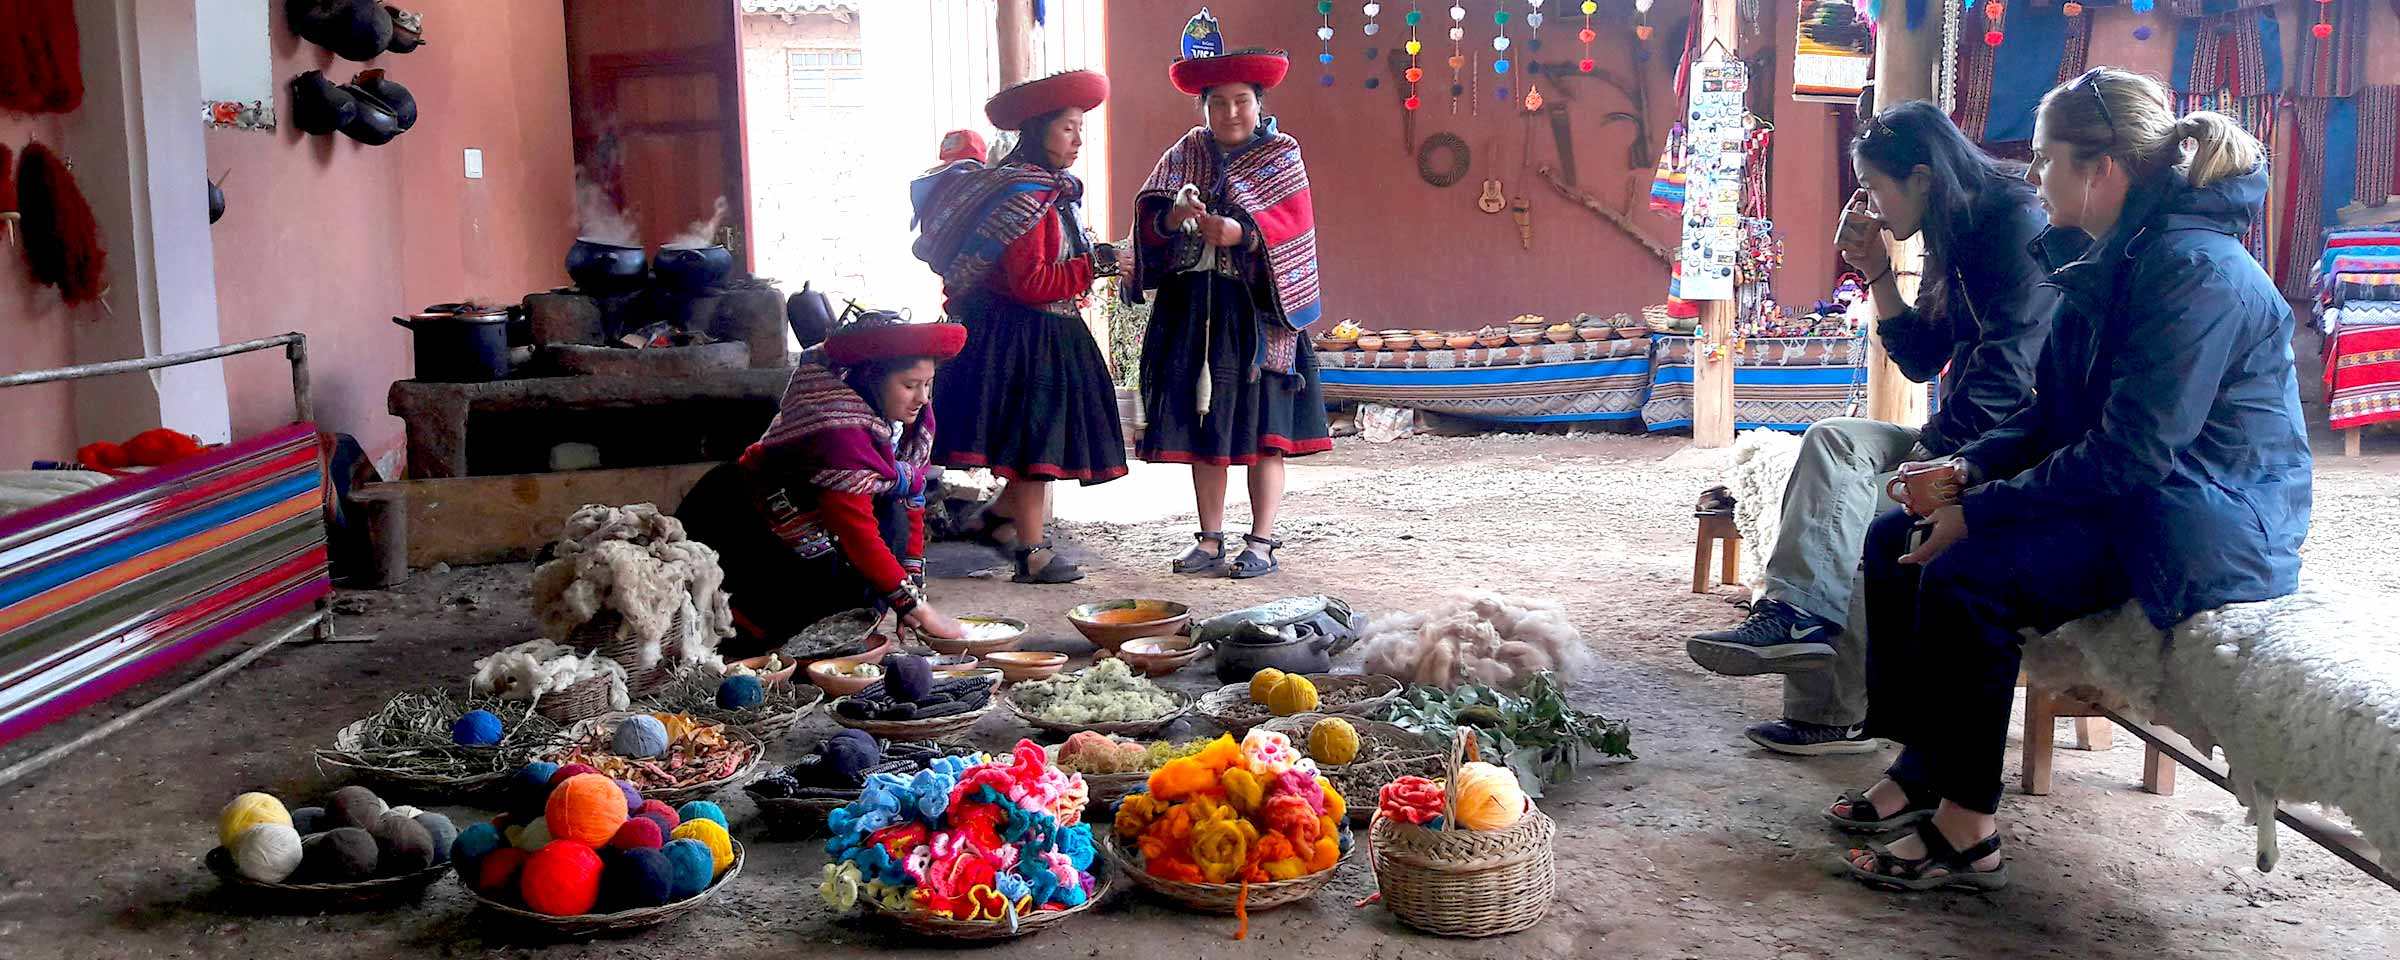 Chinchero weavers showing their weaving techniques